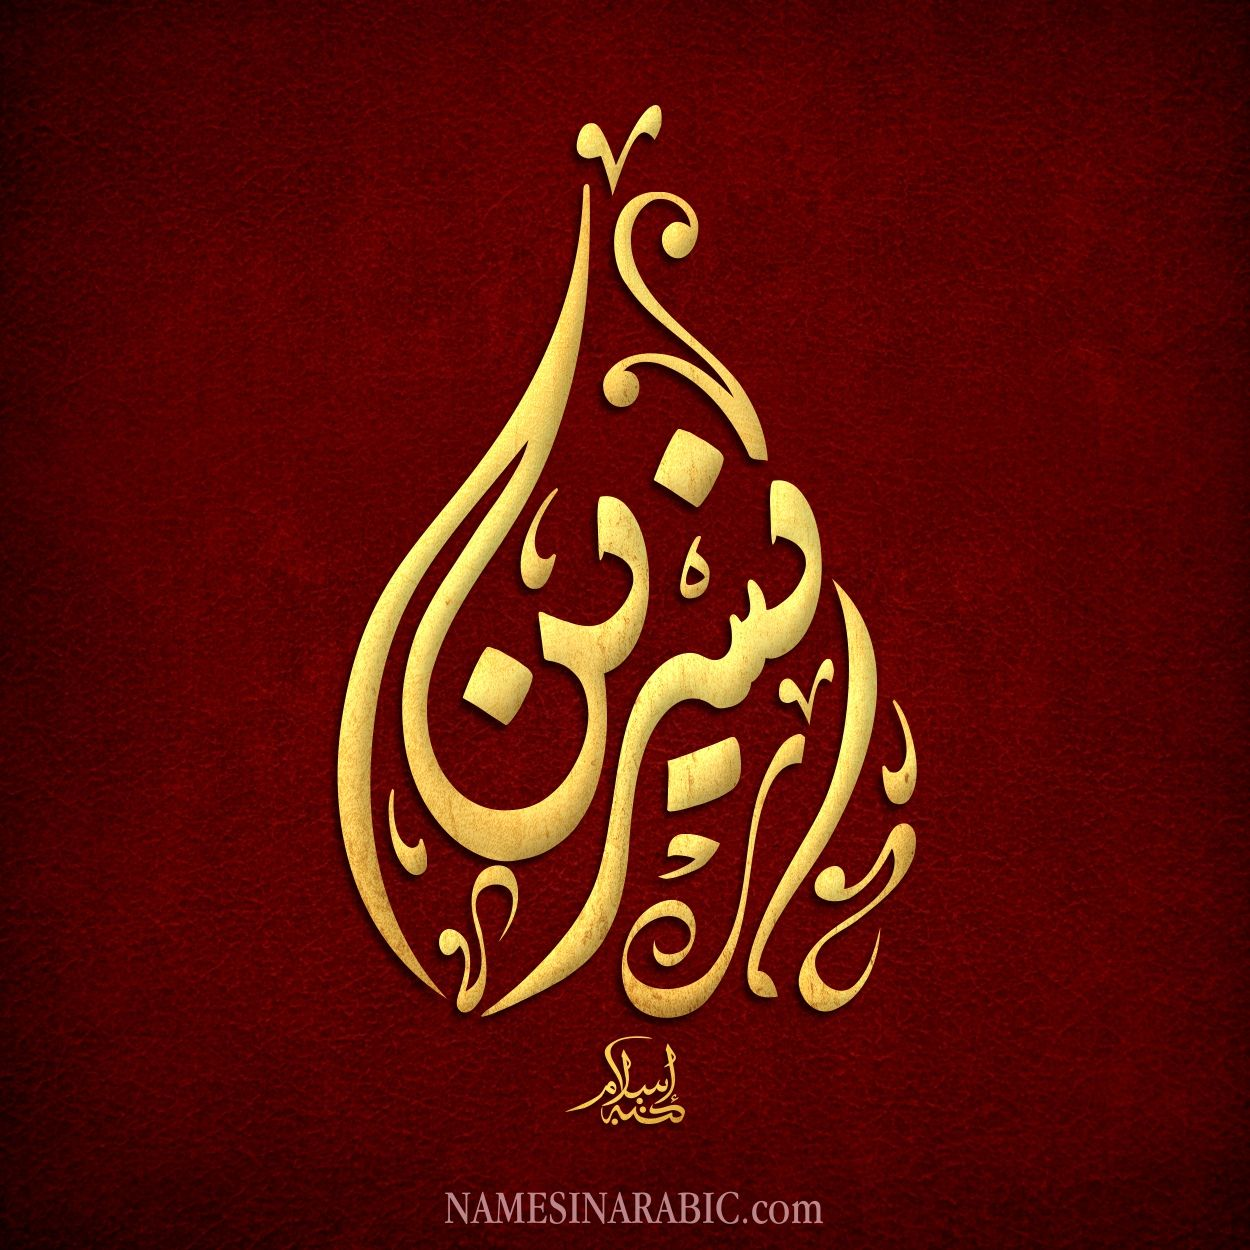 Pin By Nour Nour On Name In Arabic Calligraphy Calligraphy Art Art Arabic Font